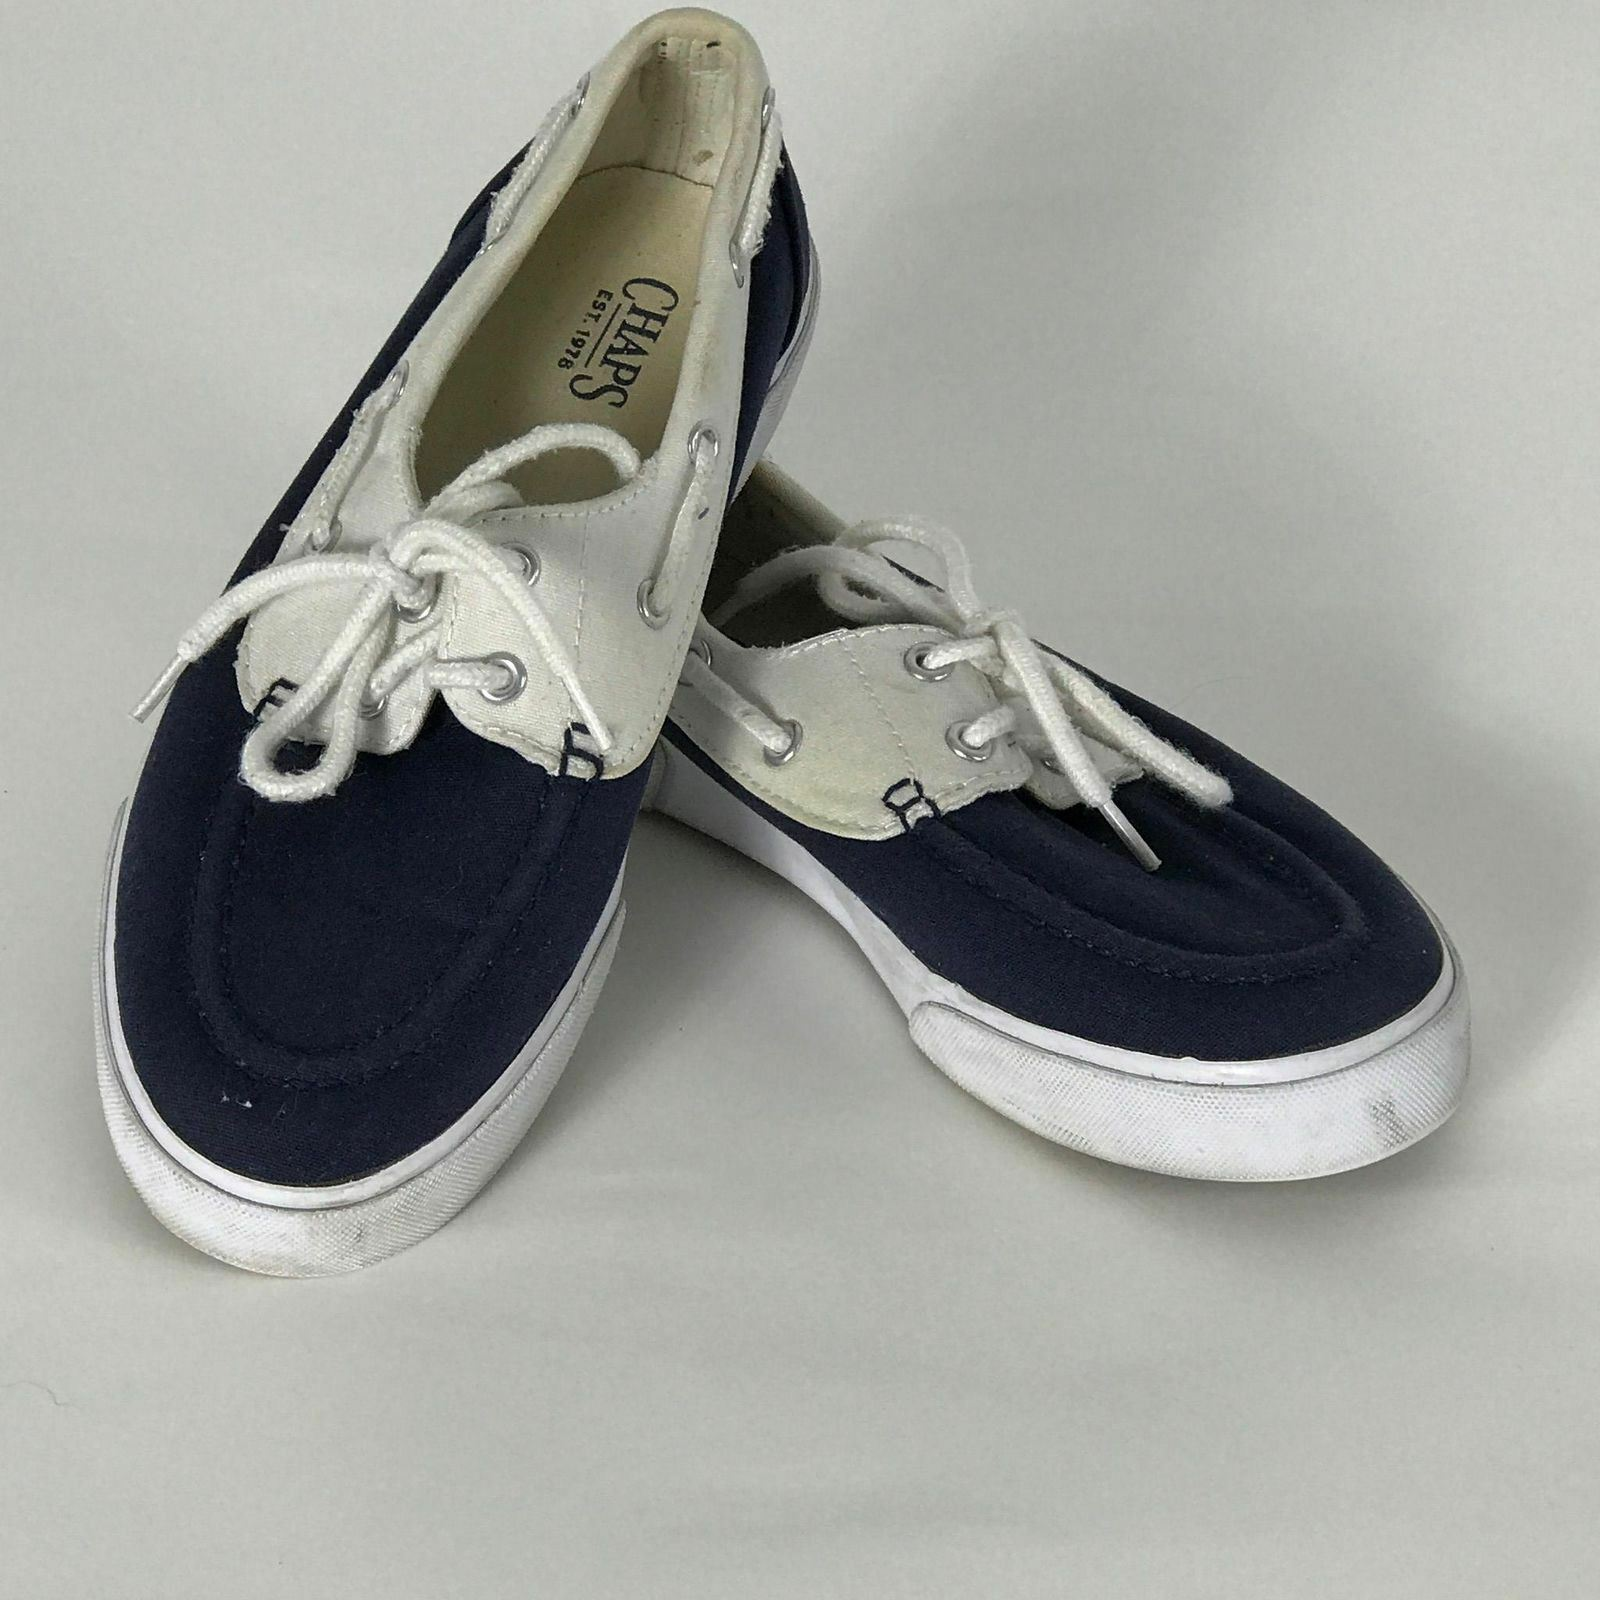 Chaps Size 7B Navy & White Canvas 360 Laces Tie Sneakers Boat shoes